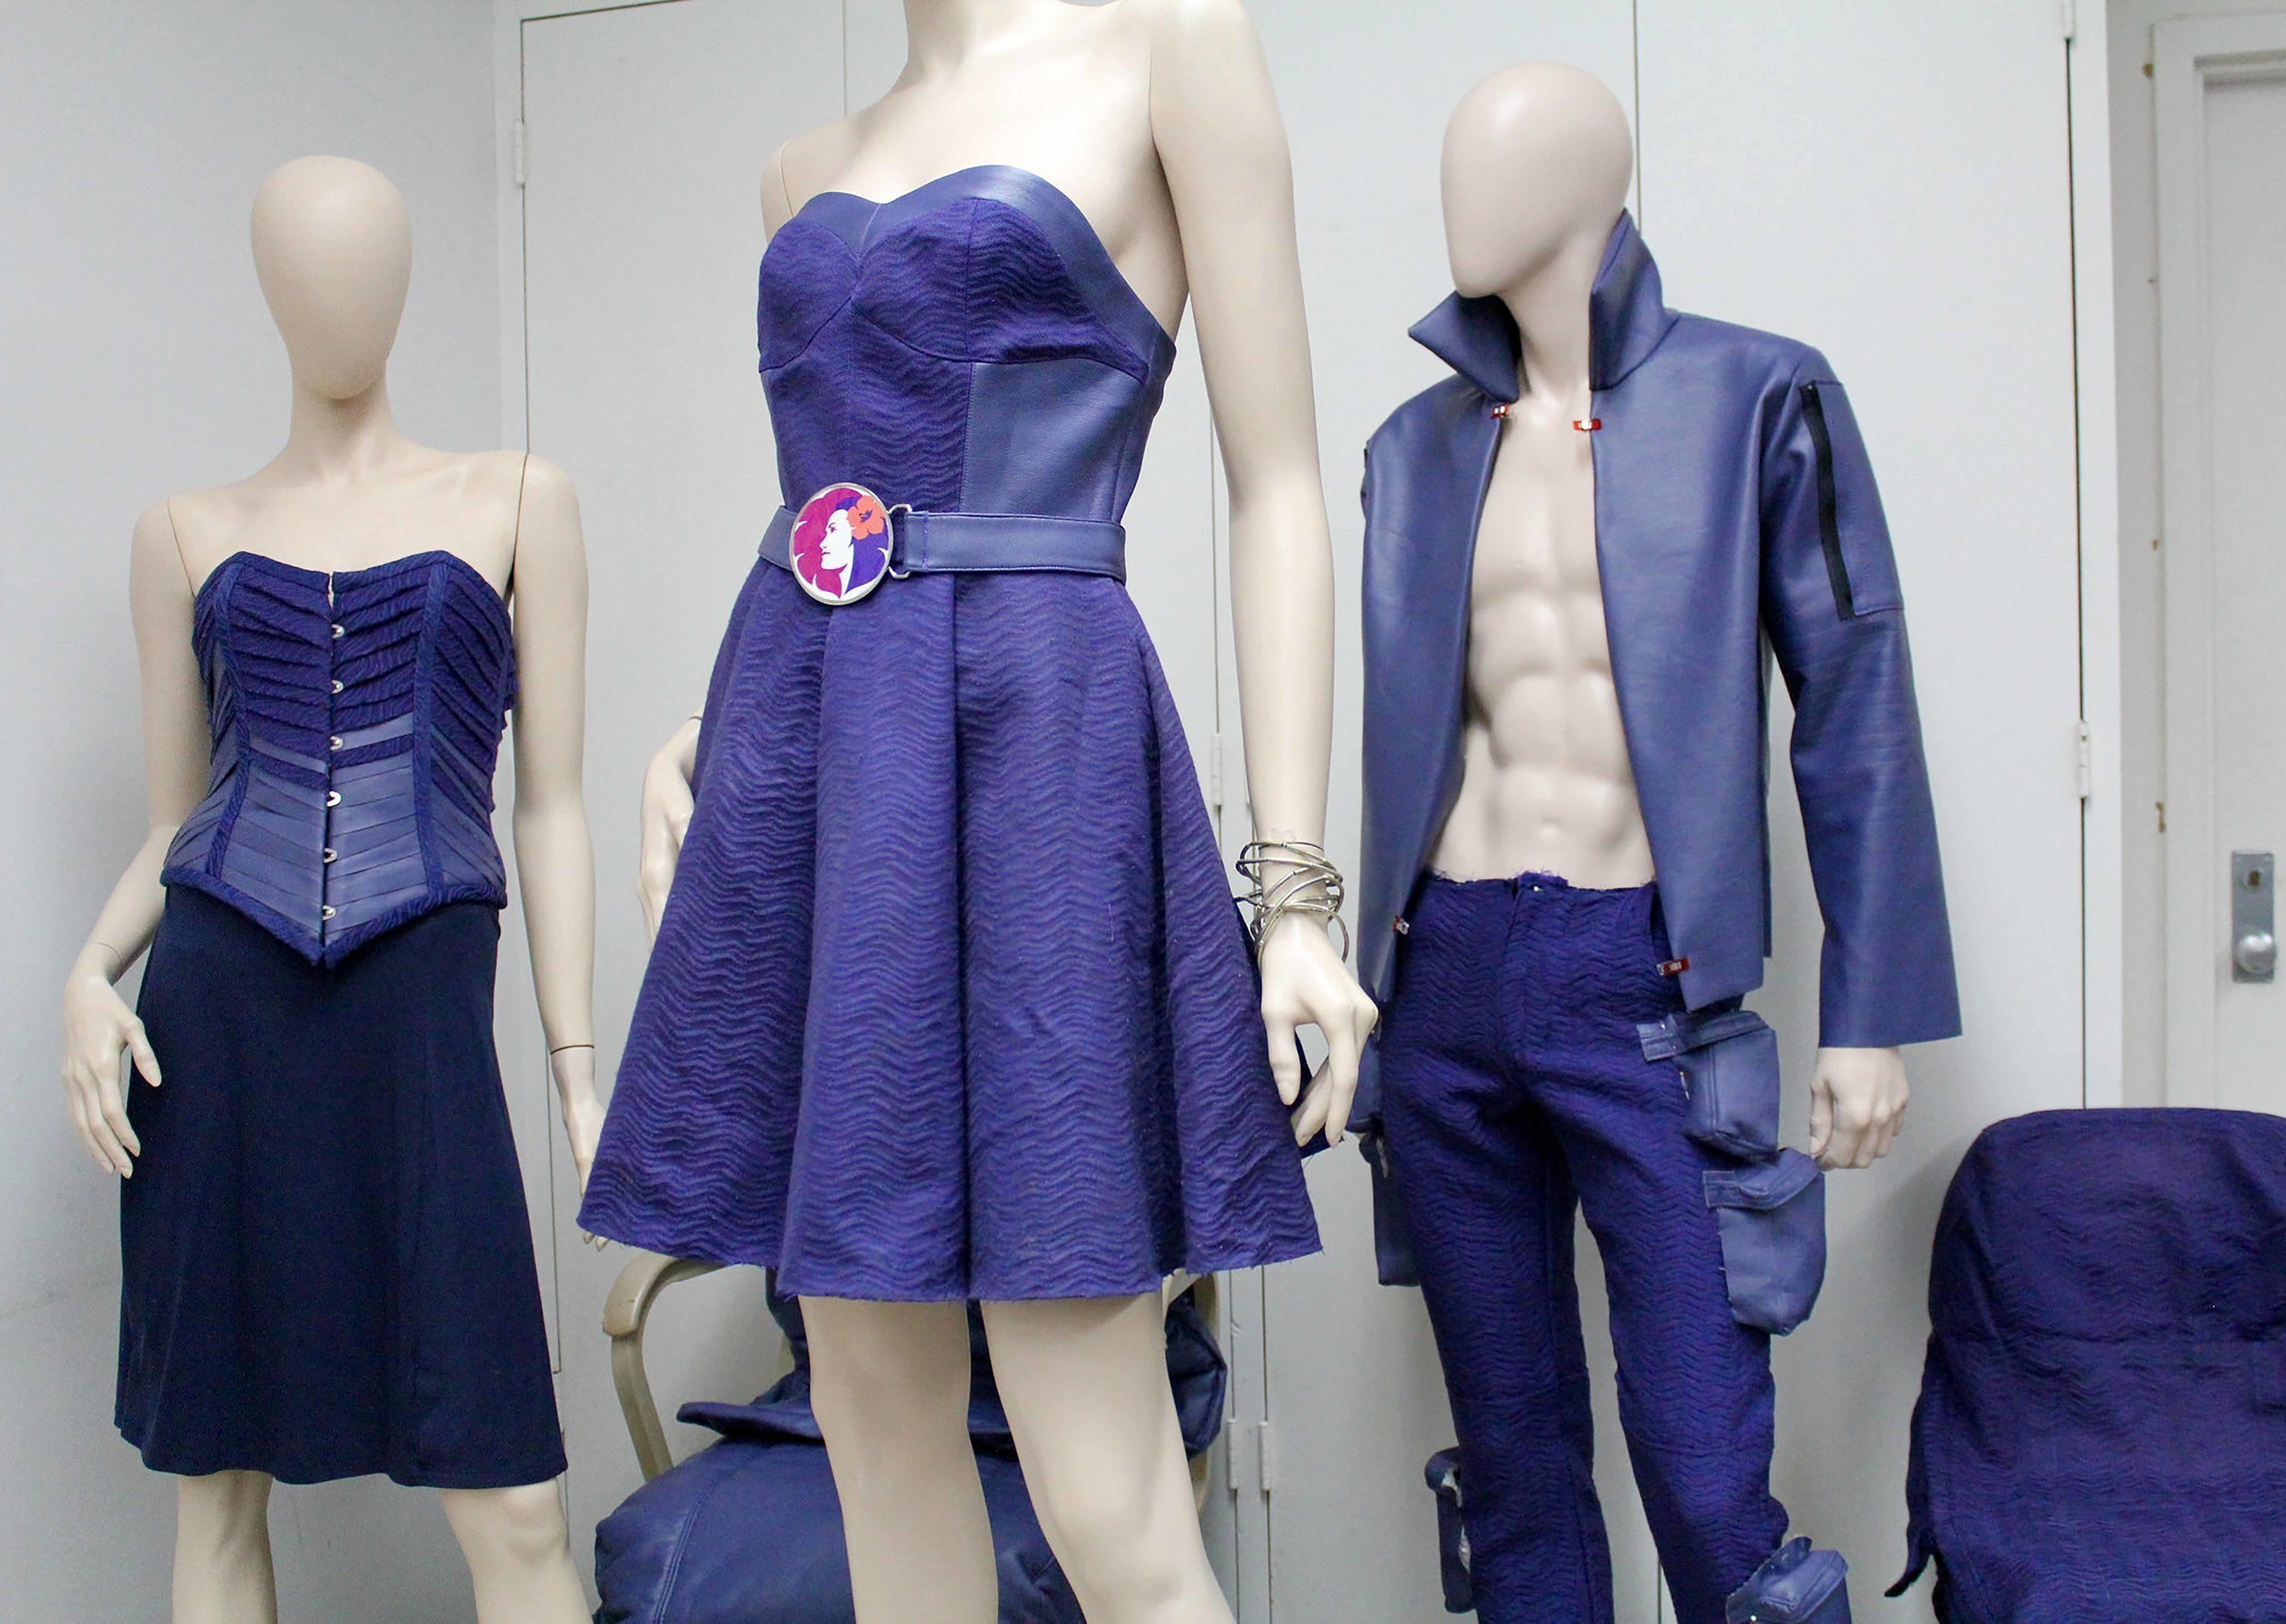 Hawaiian Airlines Partners With Emerging Designers To Transform Aircraft Seat Fabric Into Fashion